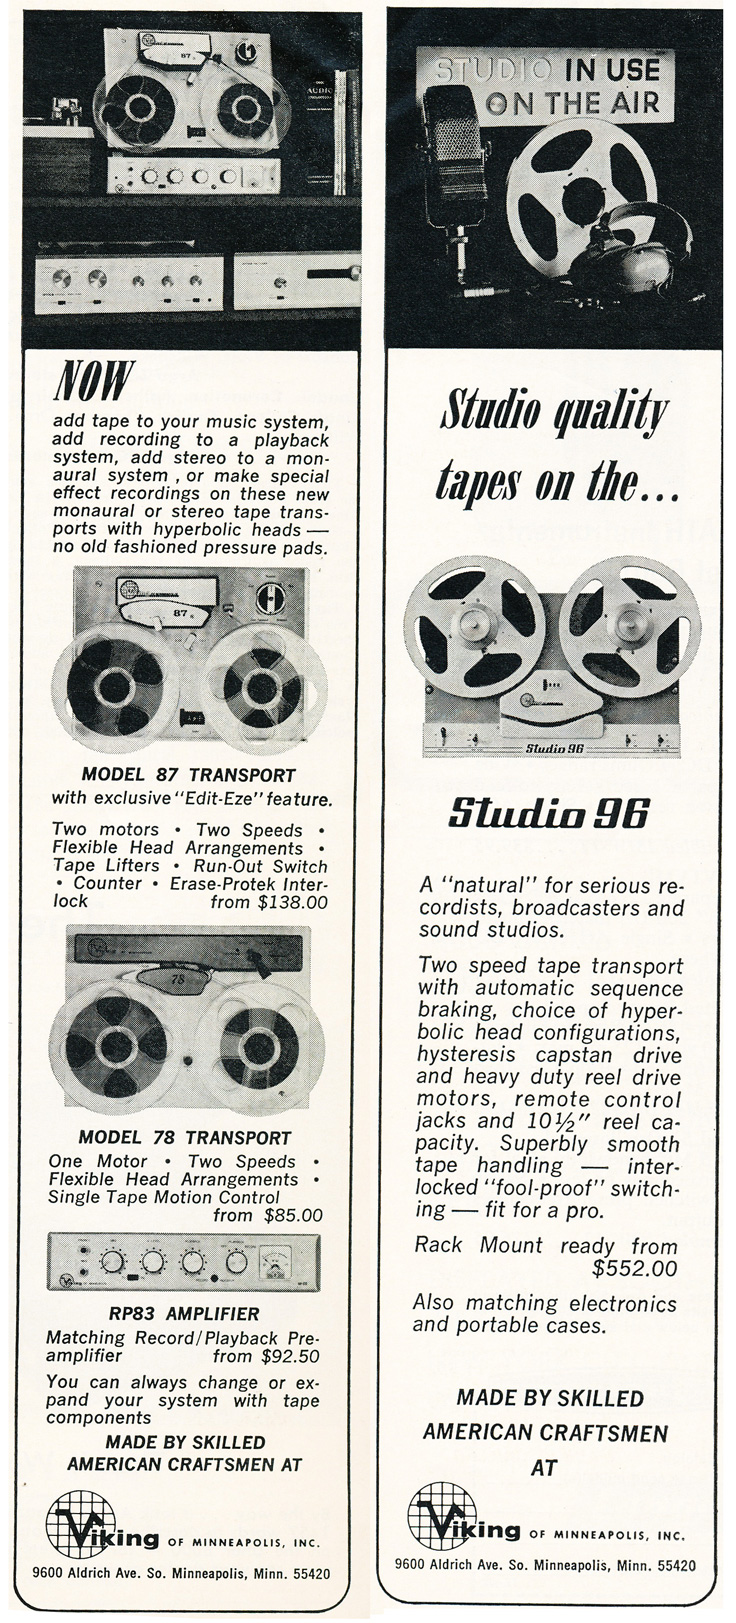 1964 ad for Viking reel to reel tape recorders in   Reel2ReelTexas.com's vintage recording collection